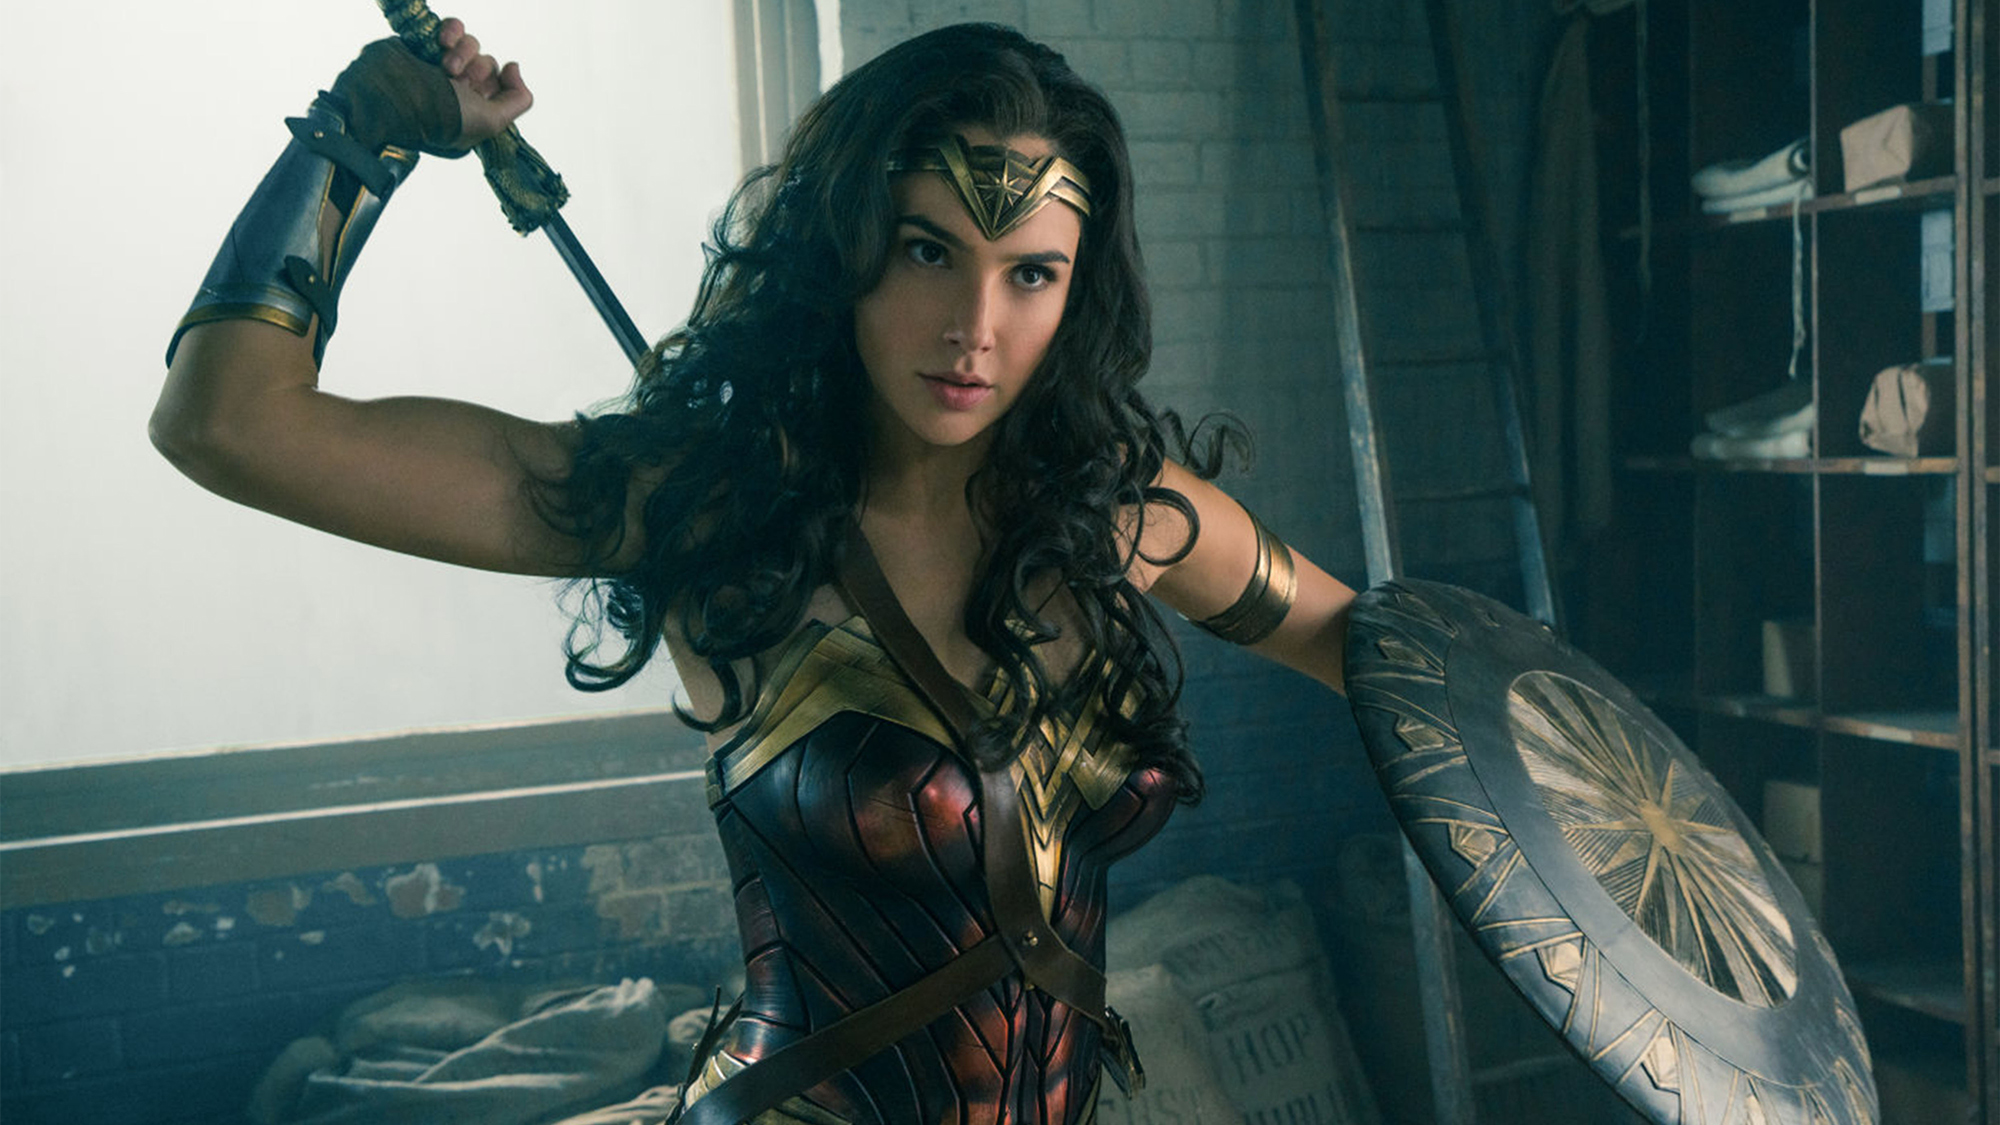 This blink-and-you-miss-it moment from Wonder Woman is going viral forecast